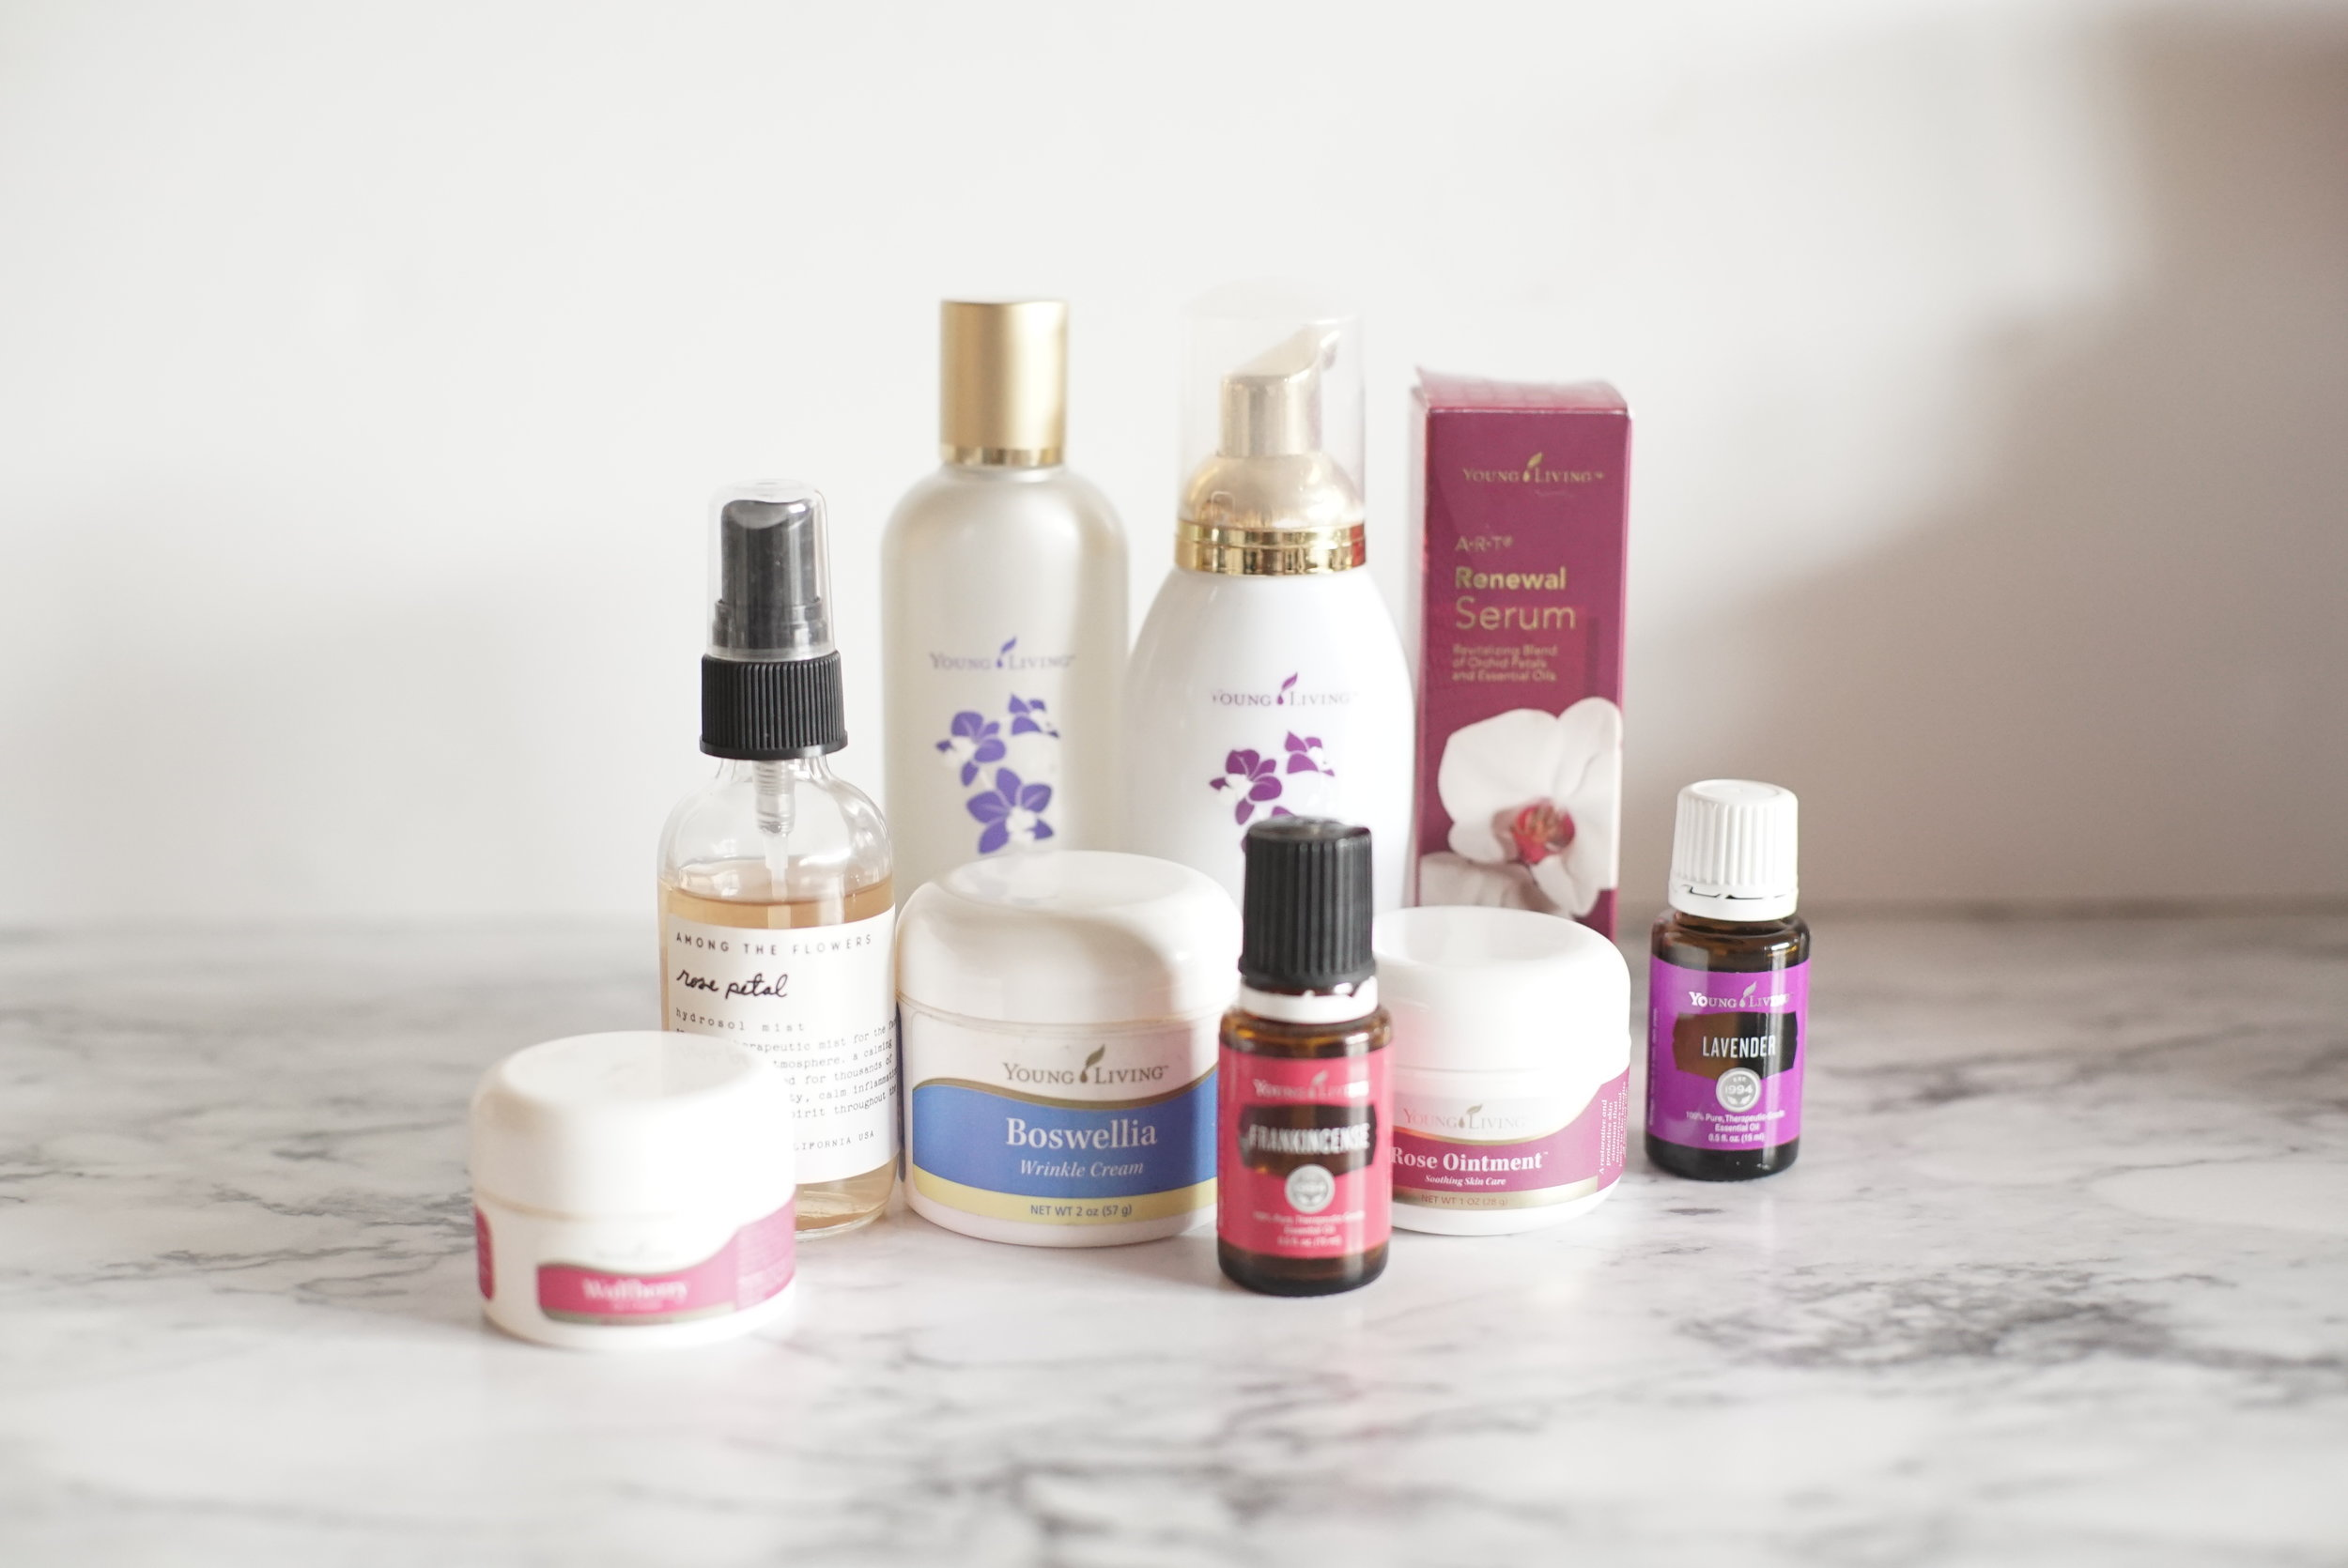 beauty - Young Living carries all of my favorite things: lotion, shampoo, conditioner, face wash, beauty masques, toner, moisturizer - even toothpaste, floss, and mouthwash! And I adore them. Formulated without toxins, these are the perfect choice for me and my family.